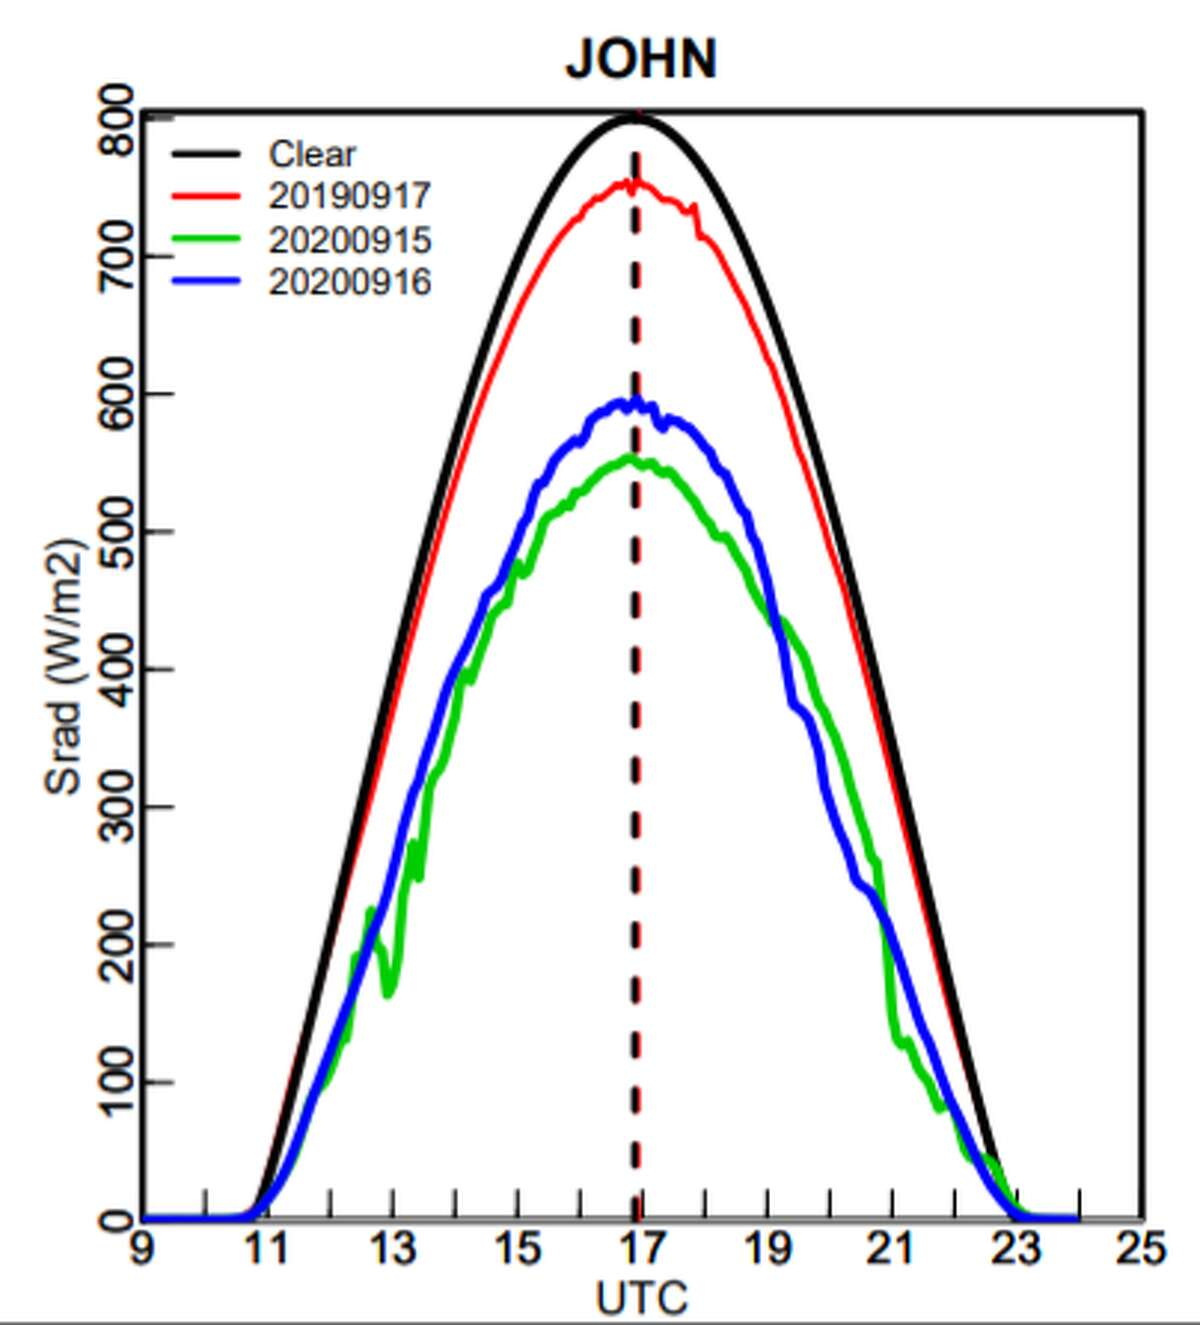 The black line in this graphic shows solar radiation levels in Johnstown on a typical clear September day. The red line is from a year ago on a clear day. The blue and green lines show the lower levels of solar radiation this week due to smoke from wildfires.